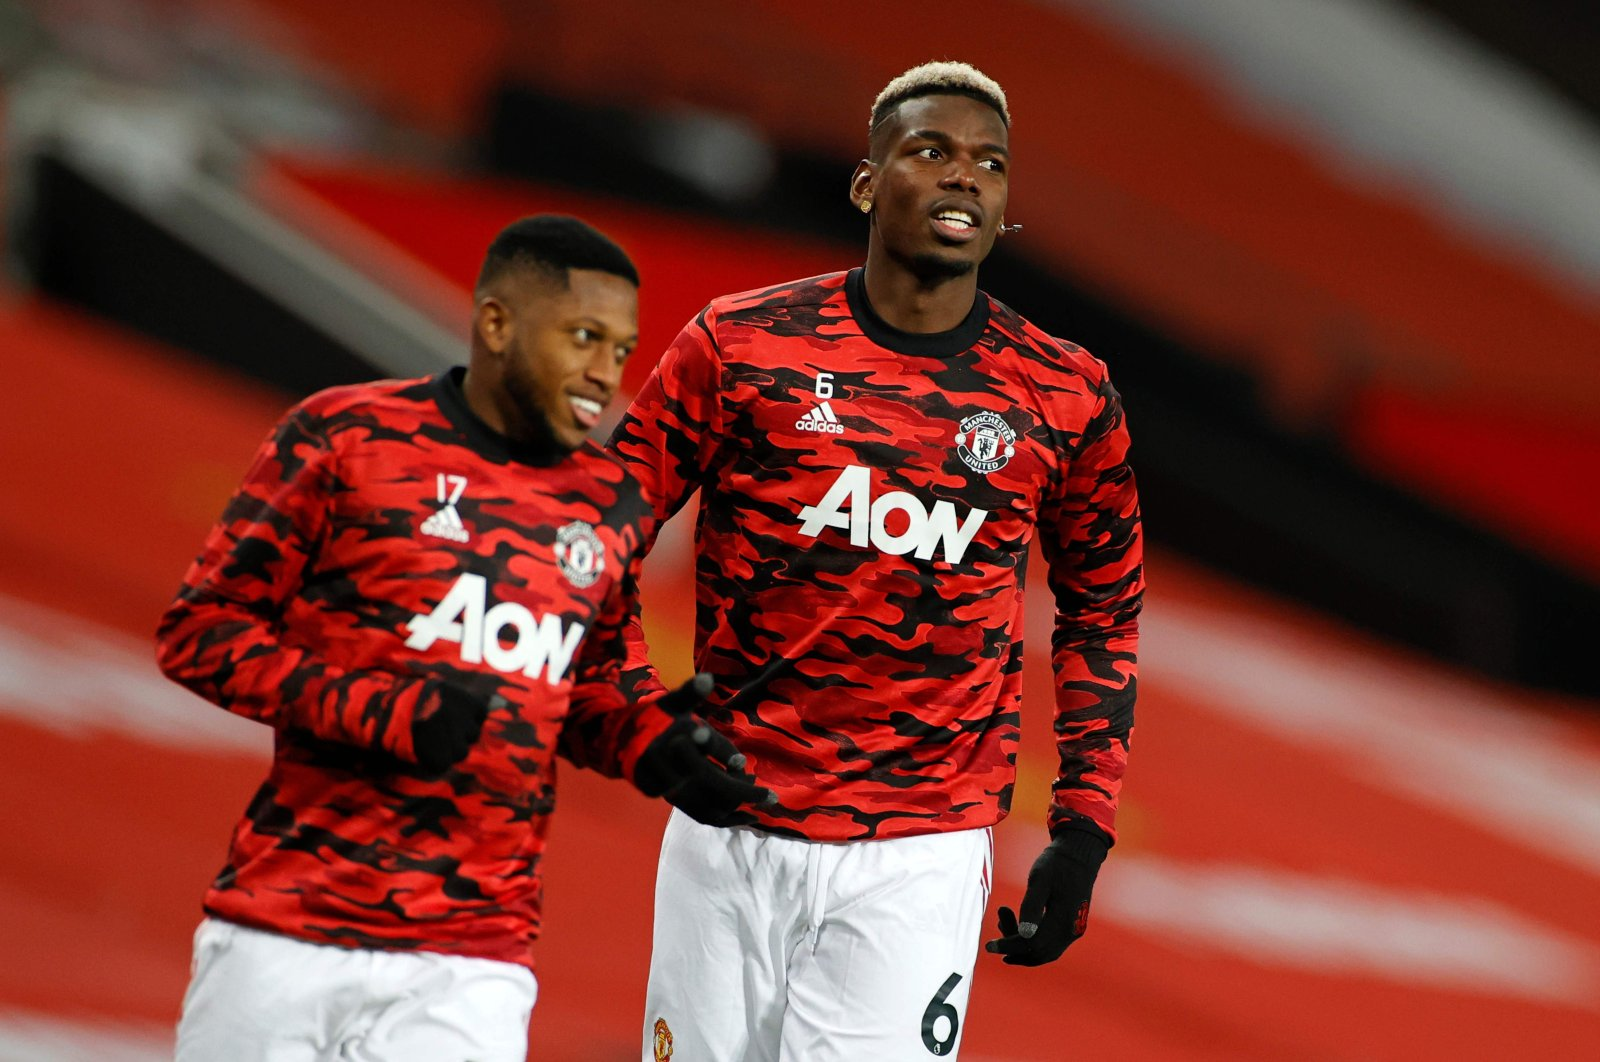 Manchester United's Fred (L) and Paul Pogba warm up ahead of a Premier League match against Manchester City at the Old Trafford stadium in Manchester, England, Dec. 12, 2020. (AFP Photo)